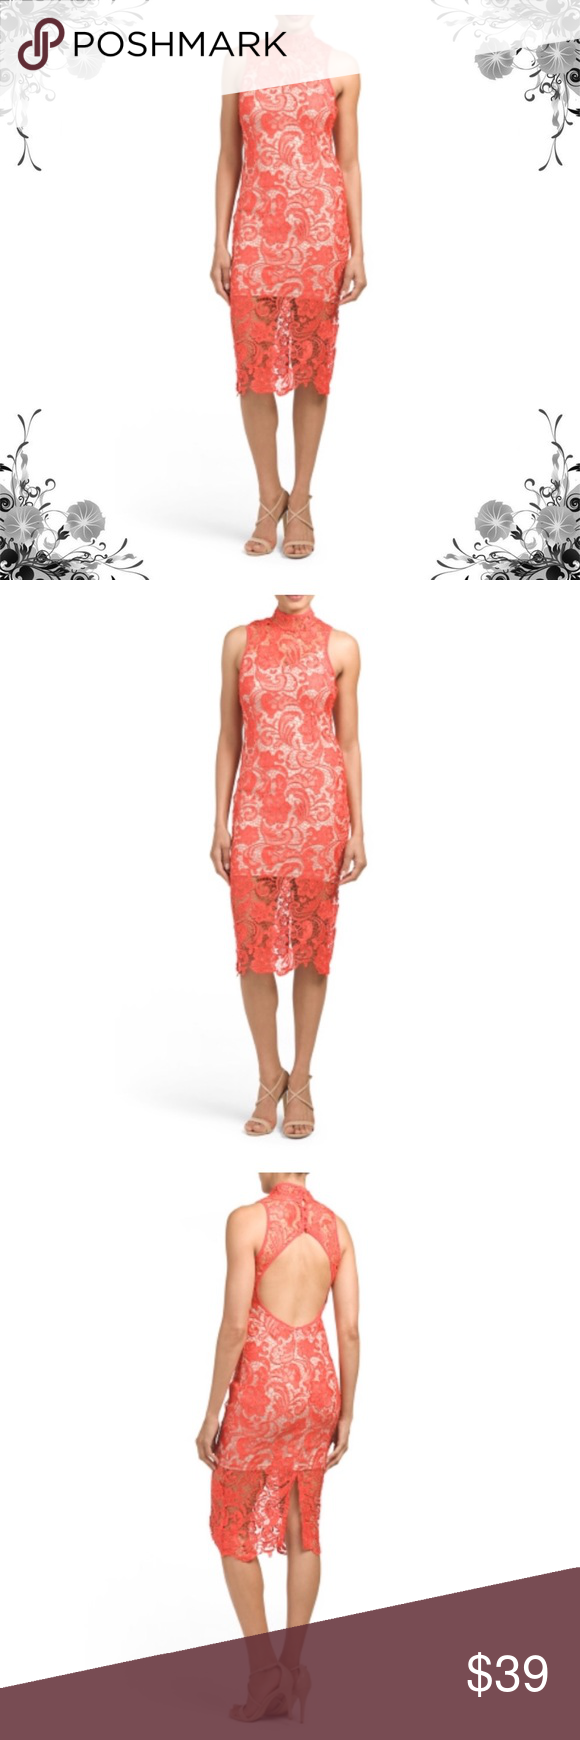 Latiste illusion lace dress sheer lace overlay openback partially